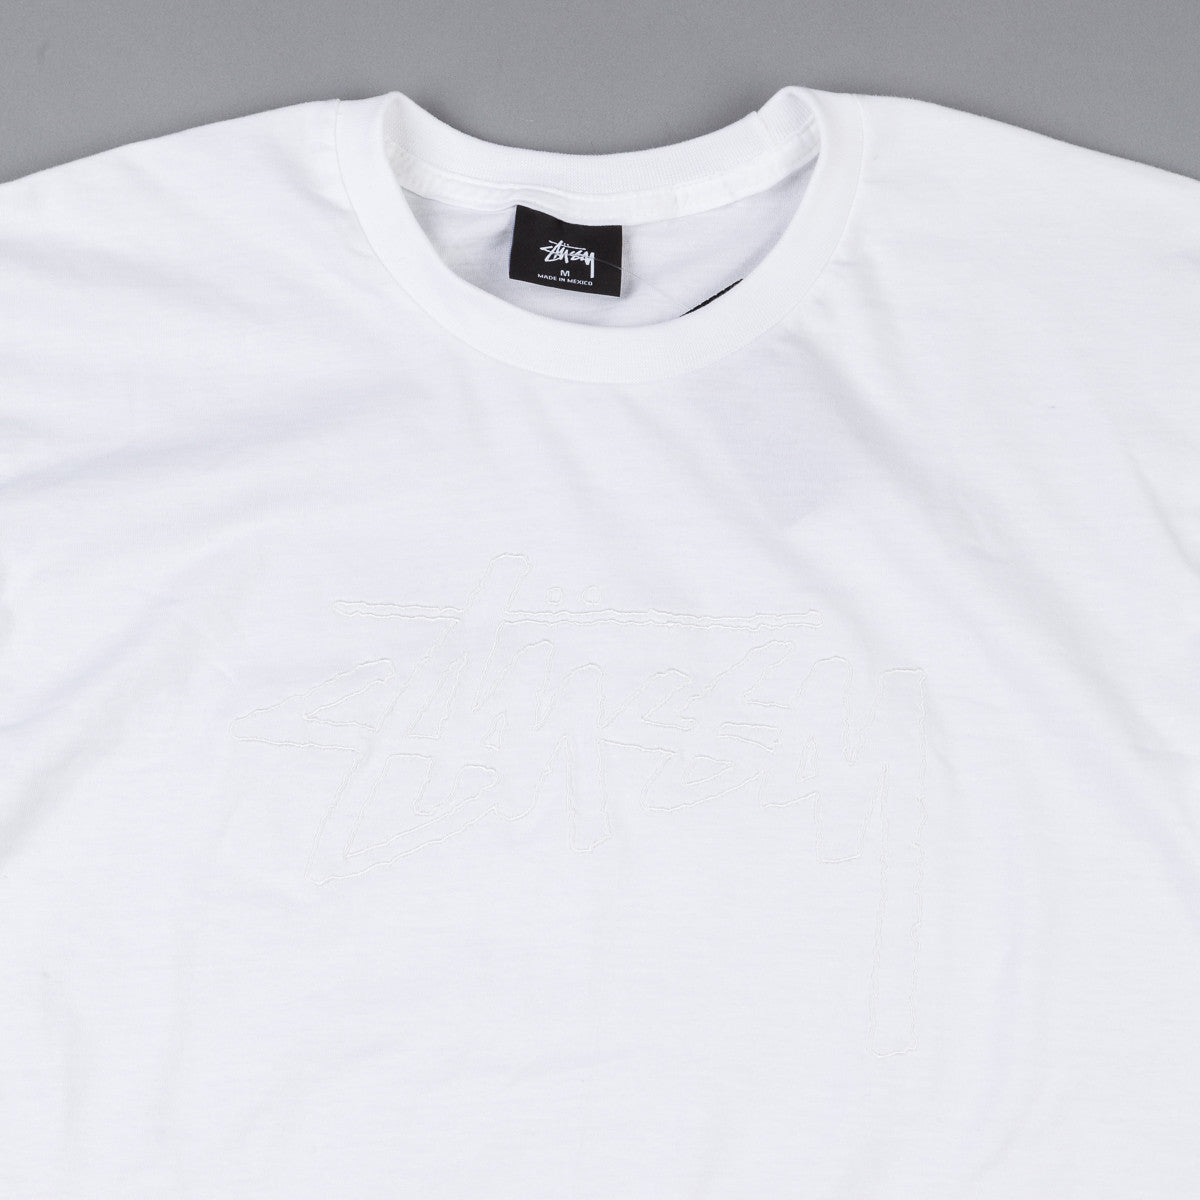 Stussy Stock Embroidered T-Shirt - White